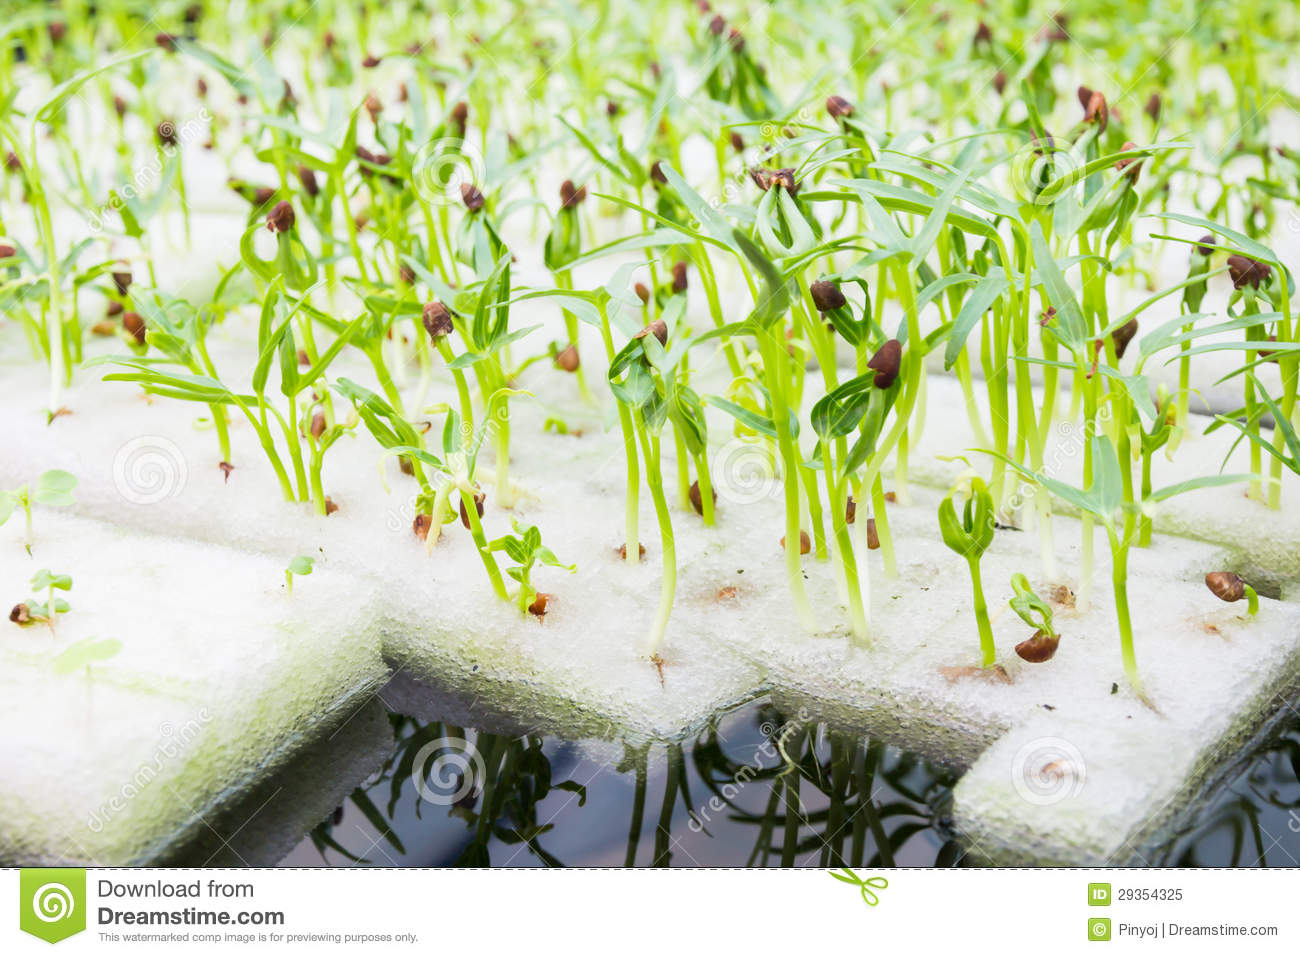 Soilless culture or hydroponic royalty free stock photo for Soil less farming